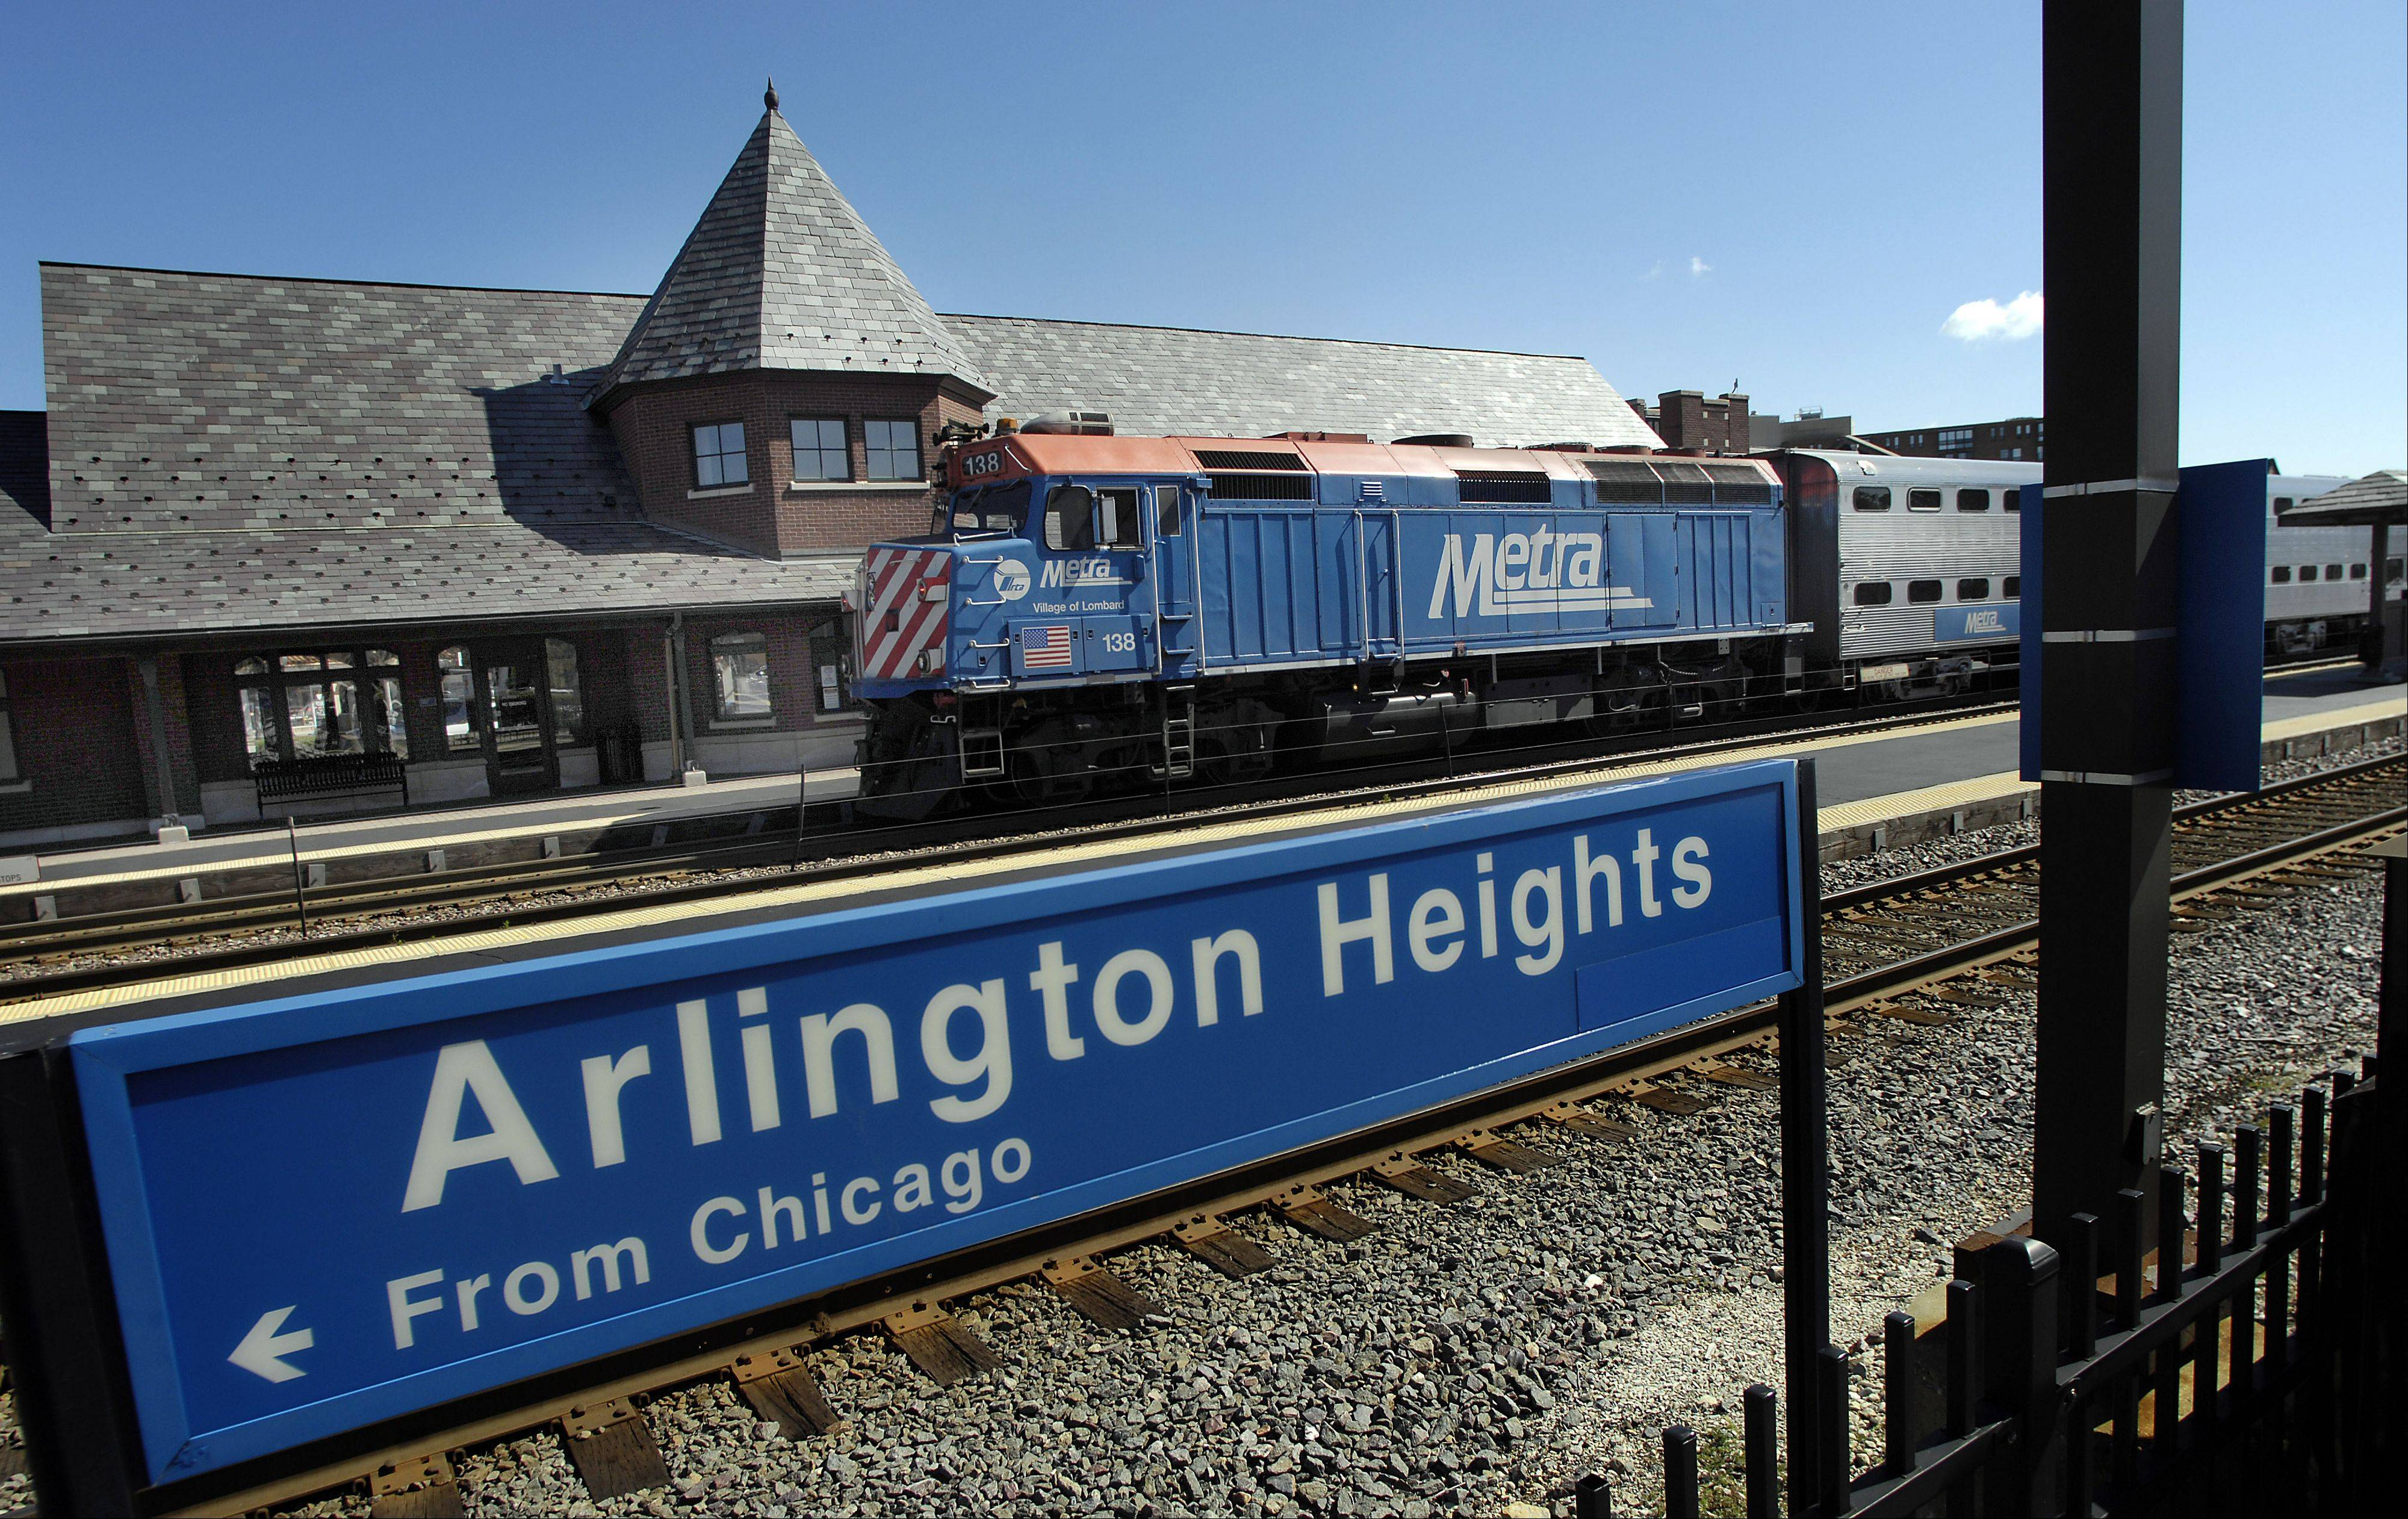 Daily Herald File PhotoIt's going to stay the Arlington Heights Metra station, for now.